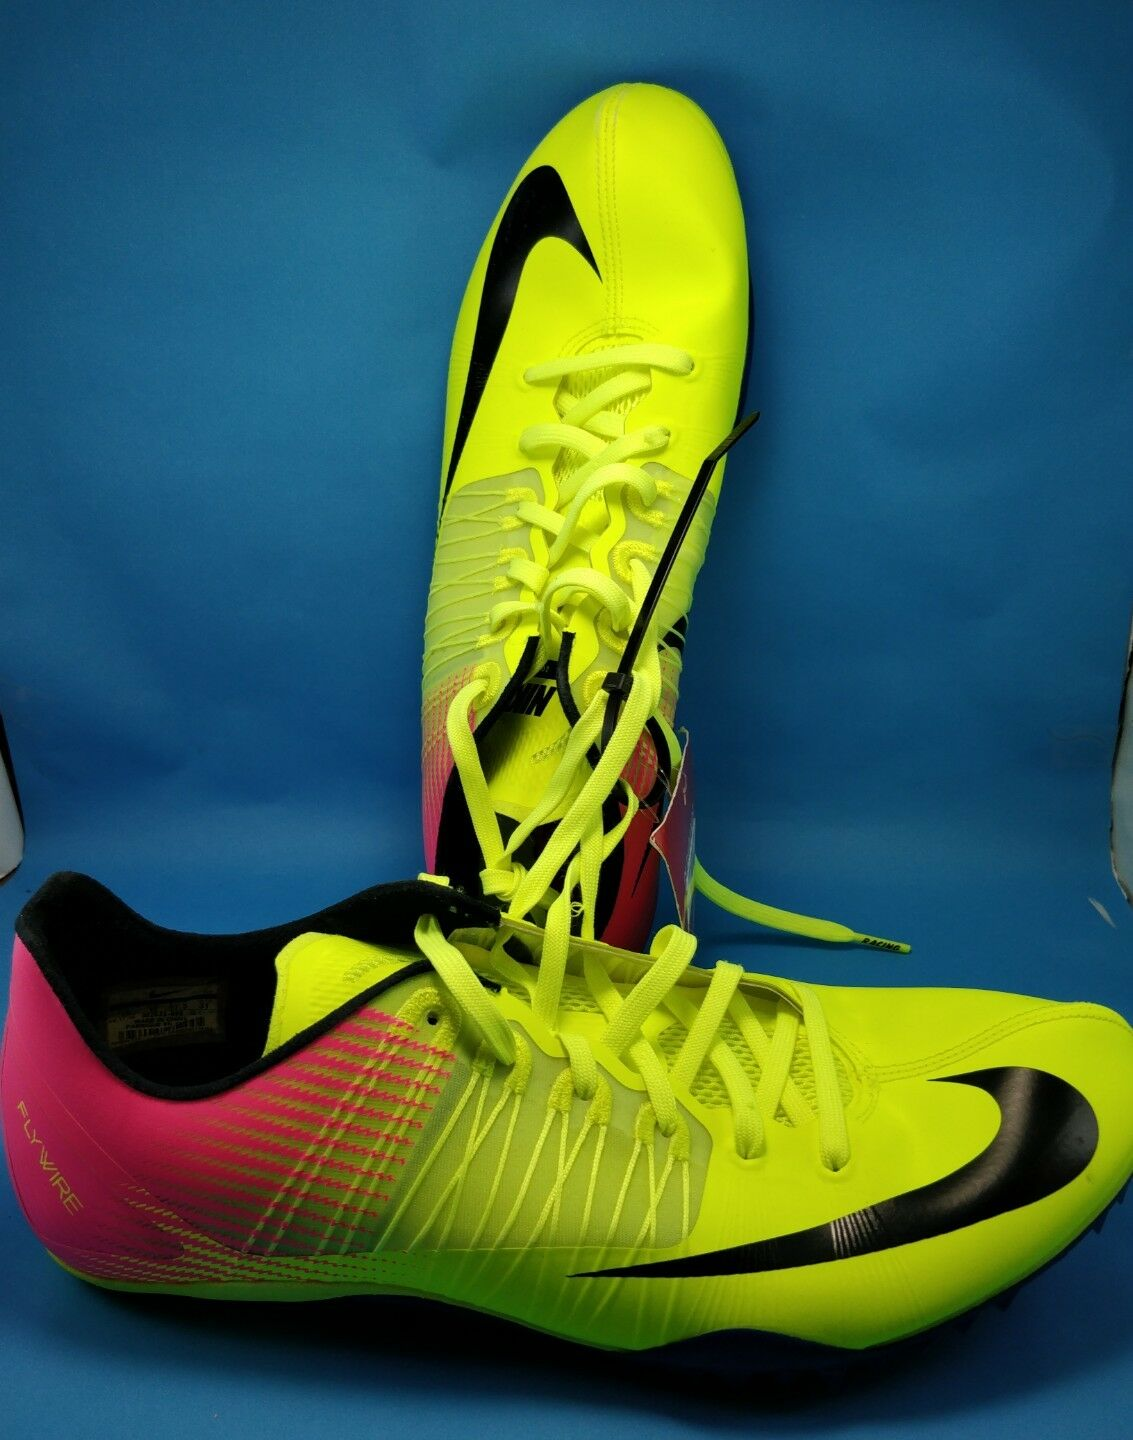 Nike - Men's - Flywire Racing Sprint - Zoom Celar - Yellow Pink